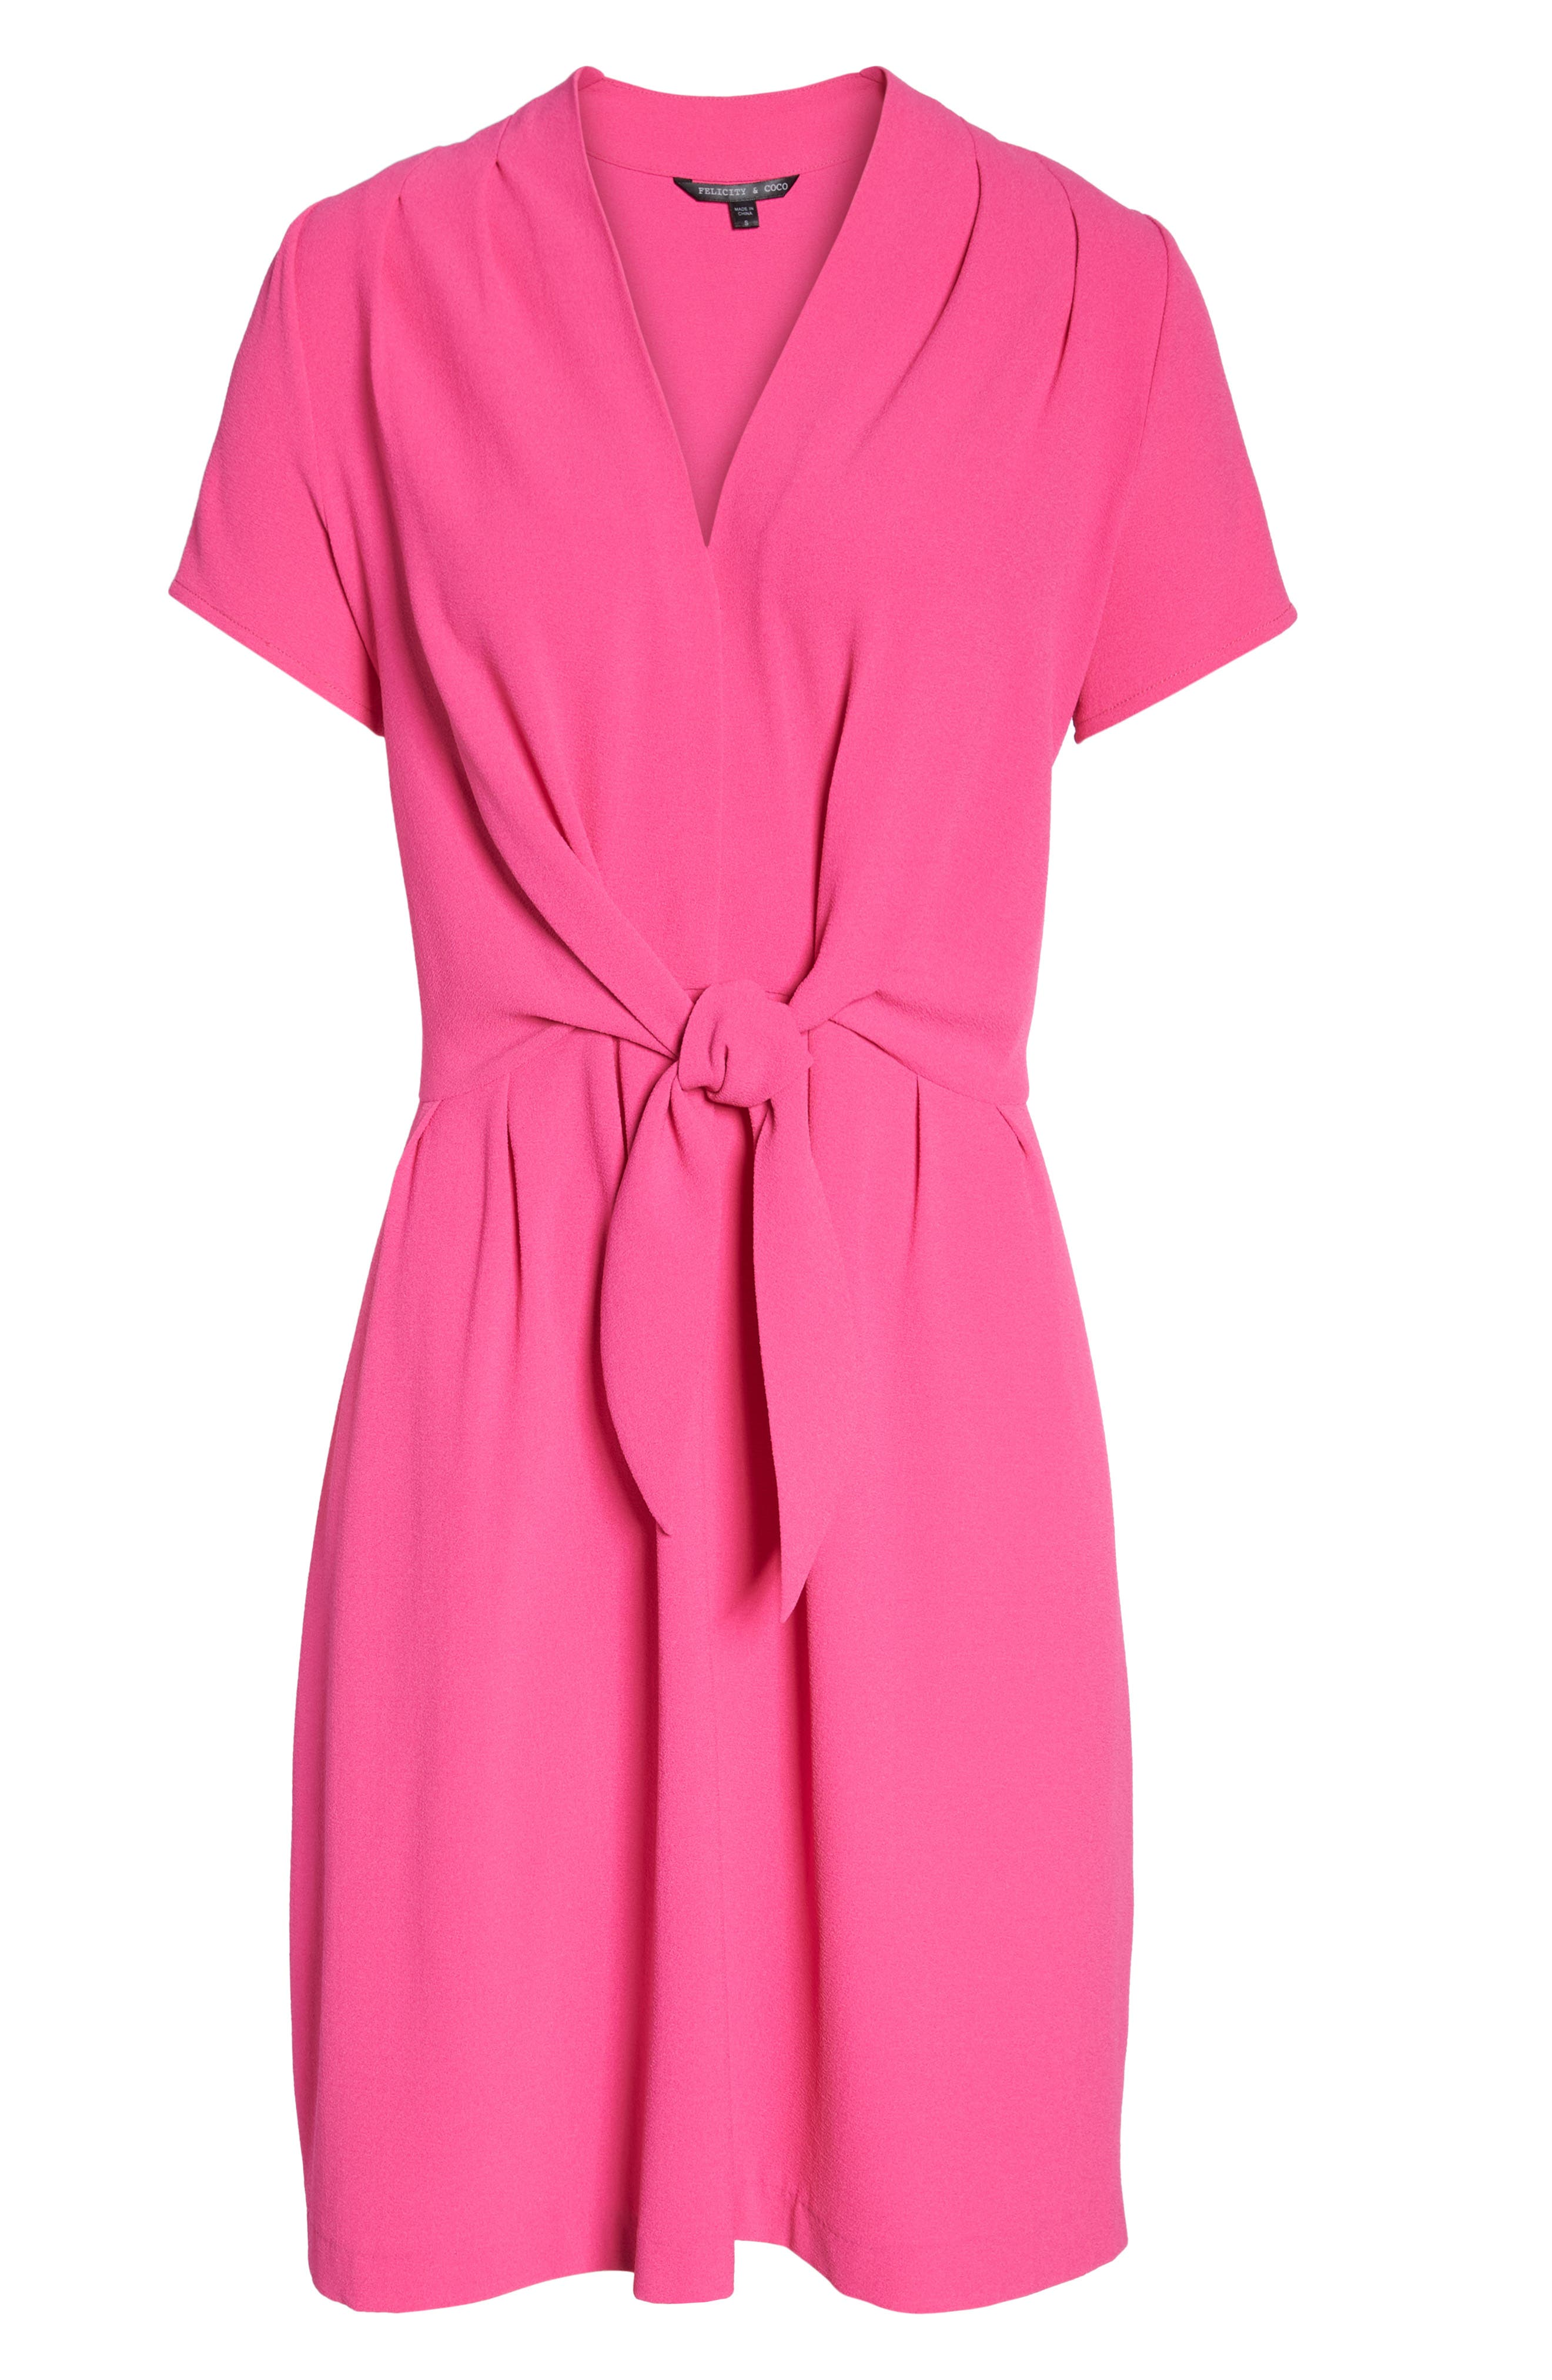 Tie Front Sheath Dress,                             Alternate thumbnail 7, color,                             Hot Pink